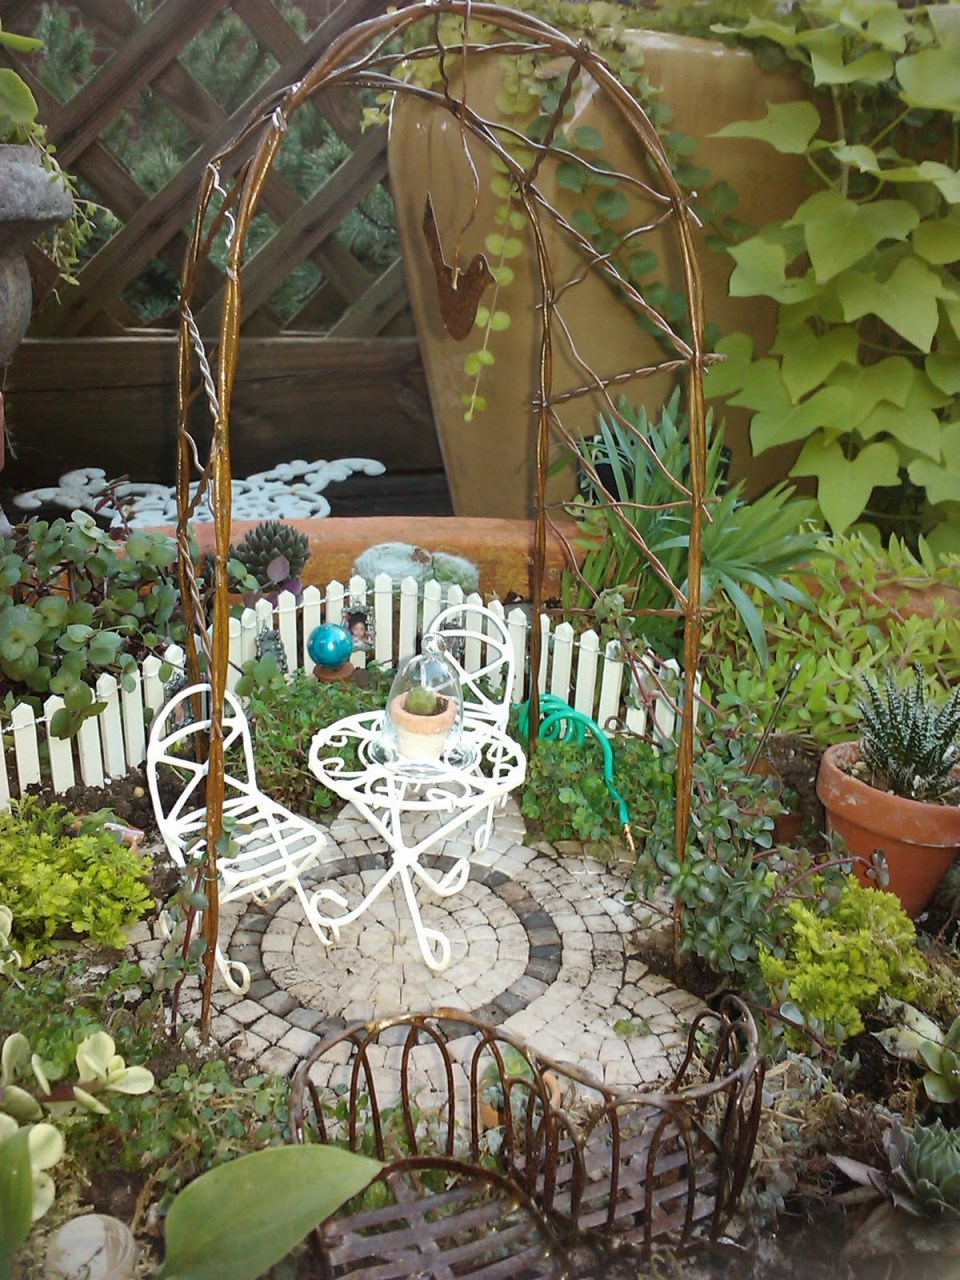 Fairy Garden Ideas: Hunnicutt land fairy garden